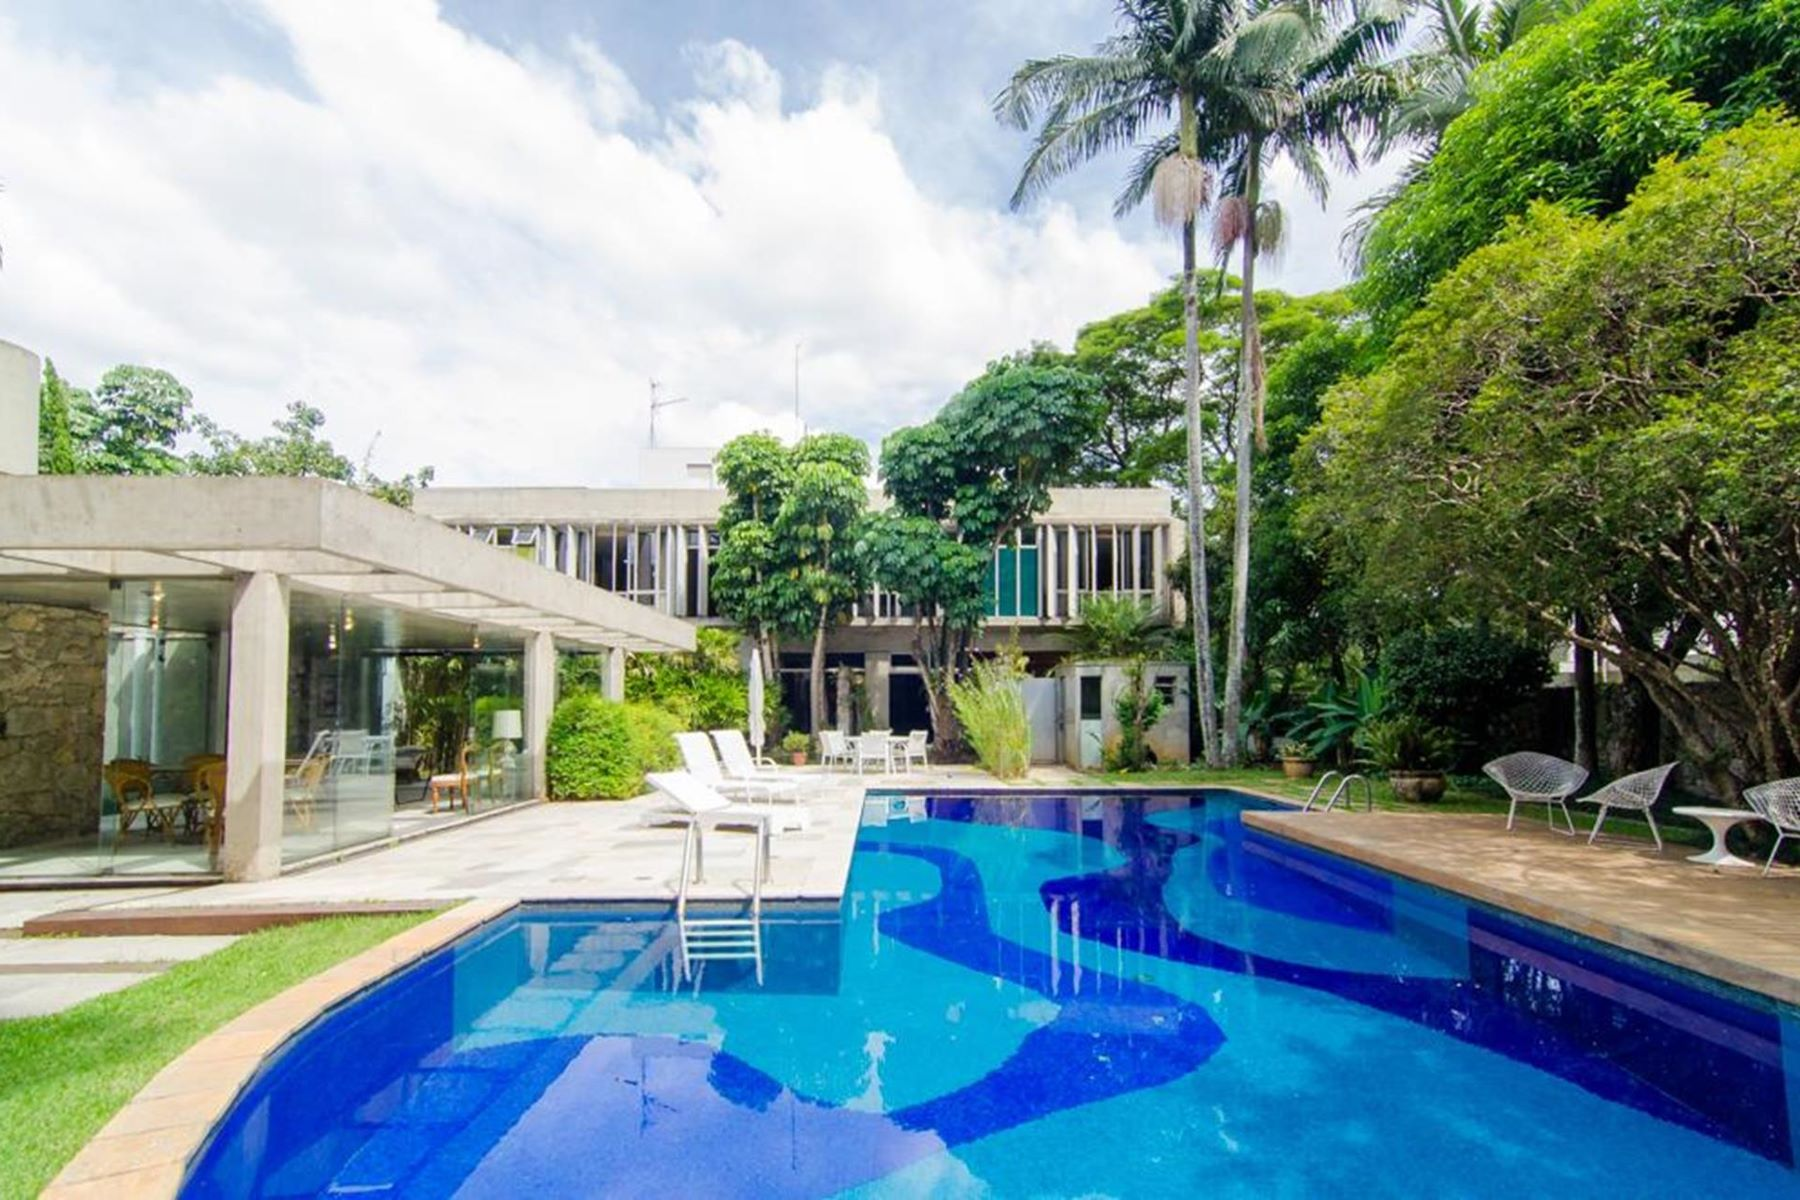 Single Family Home for Sale at Dazzling Property Sao Paulo, Sao Paulo, 01449-020 Brazil